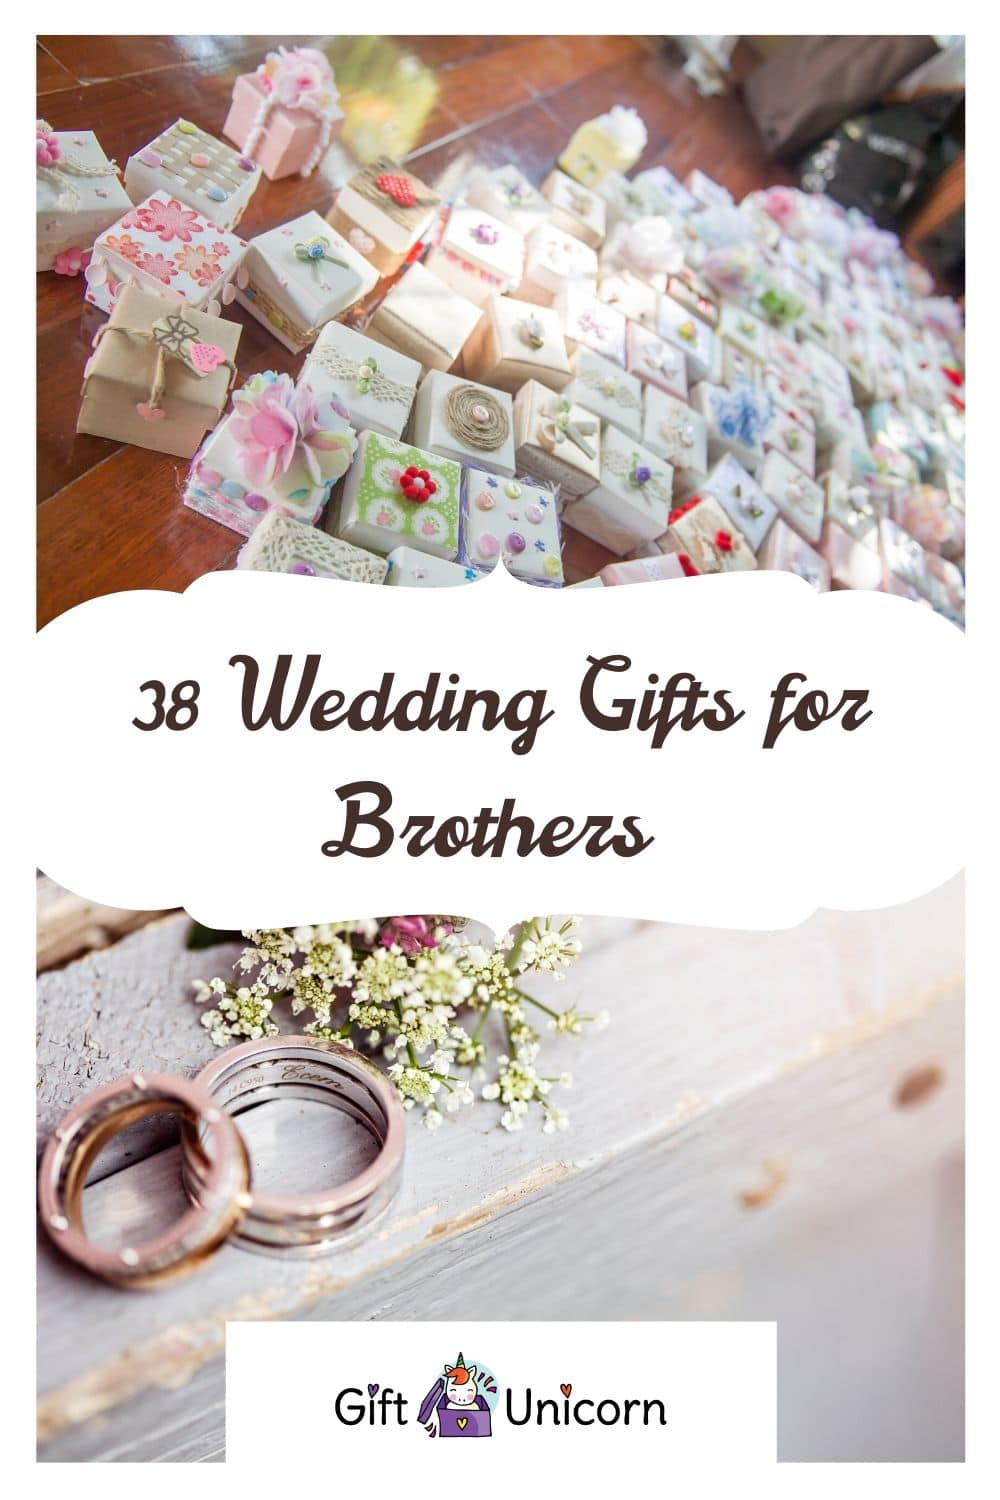 38 wedding gifts for brothers pin image